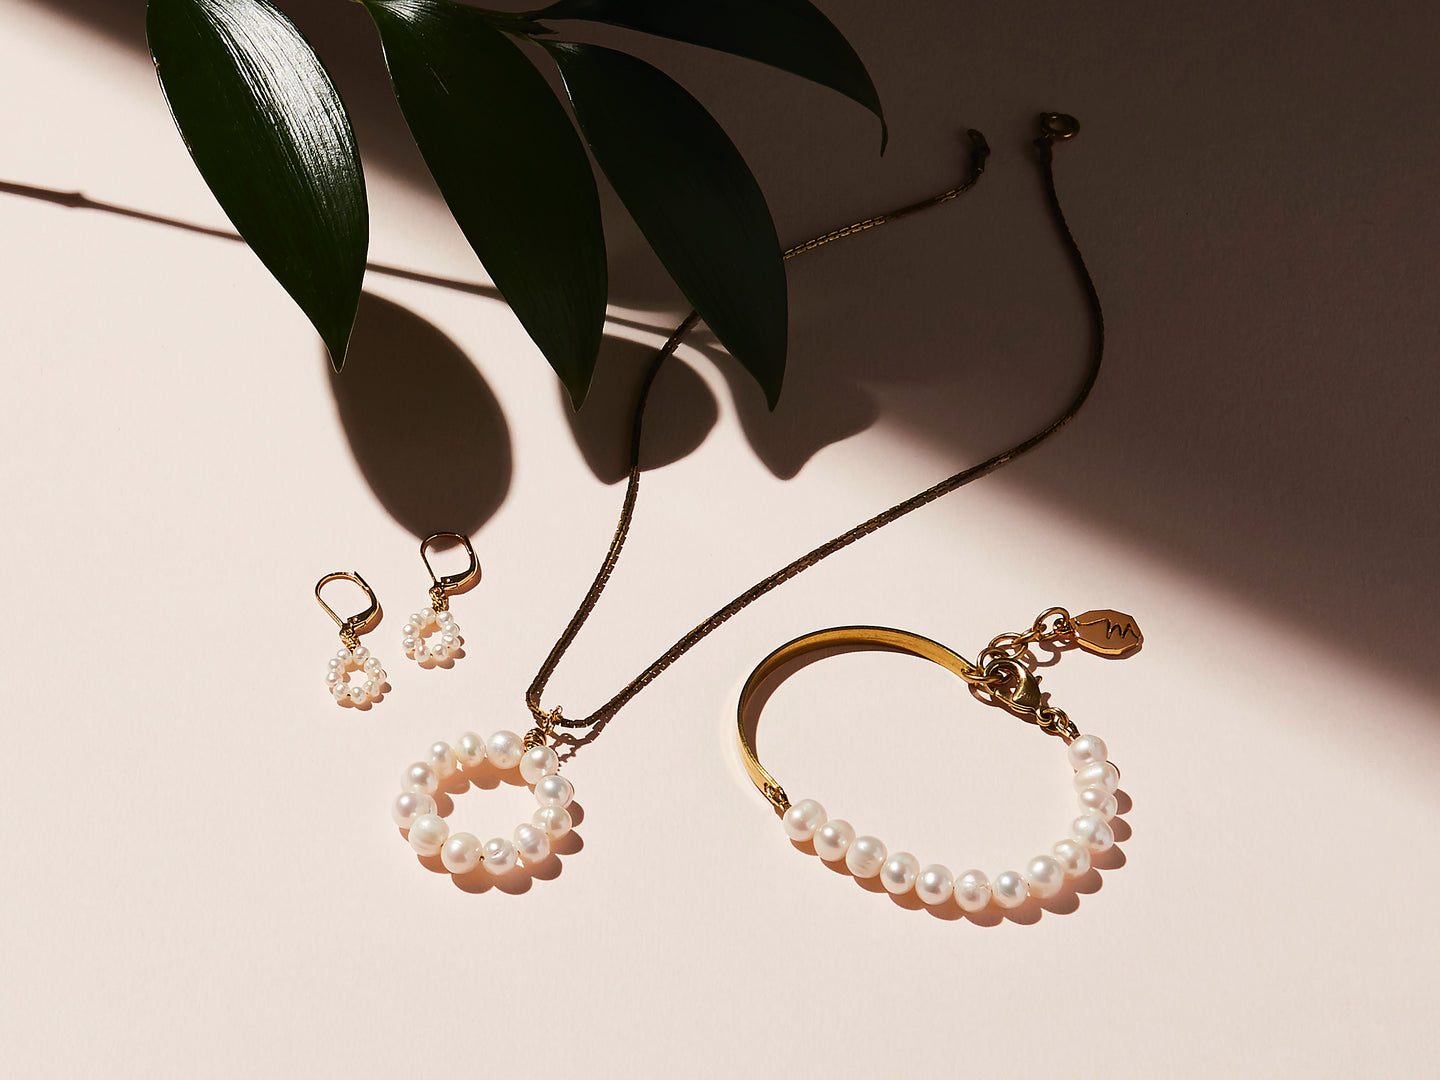 STILL LIFE | MoonRox Jewellery & Accessories Collection for Fall/Winter 2020. Illuminate Earrings, Necklace and Bracelet with brass and freshwater pearl.